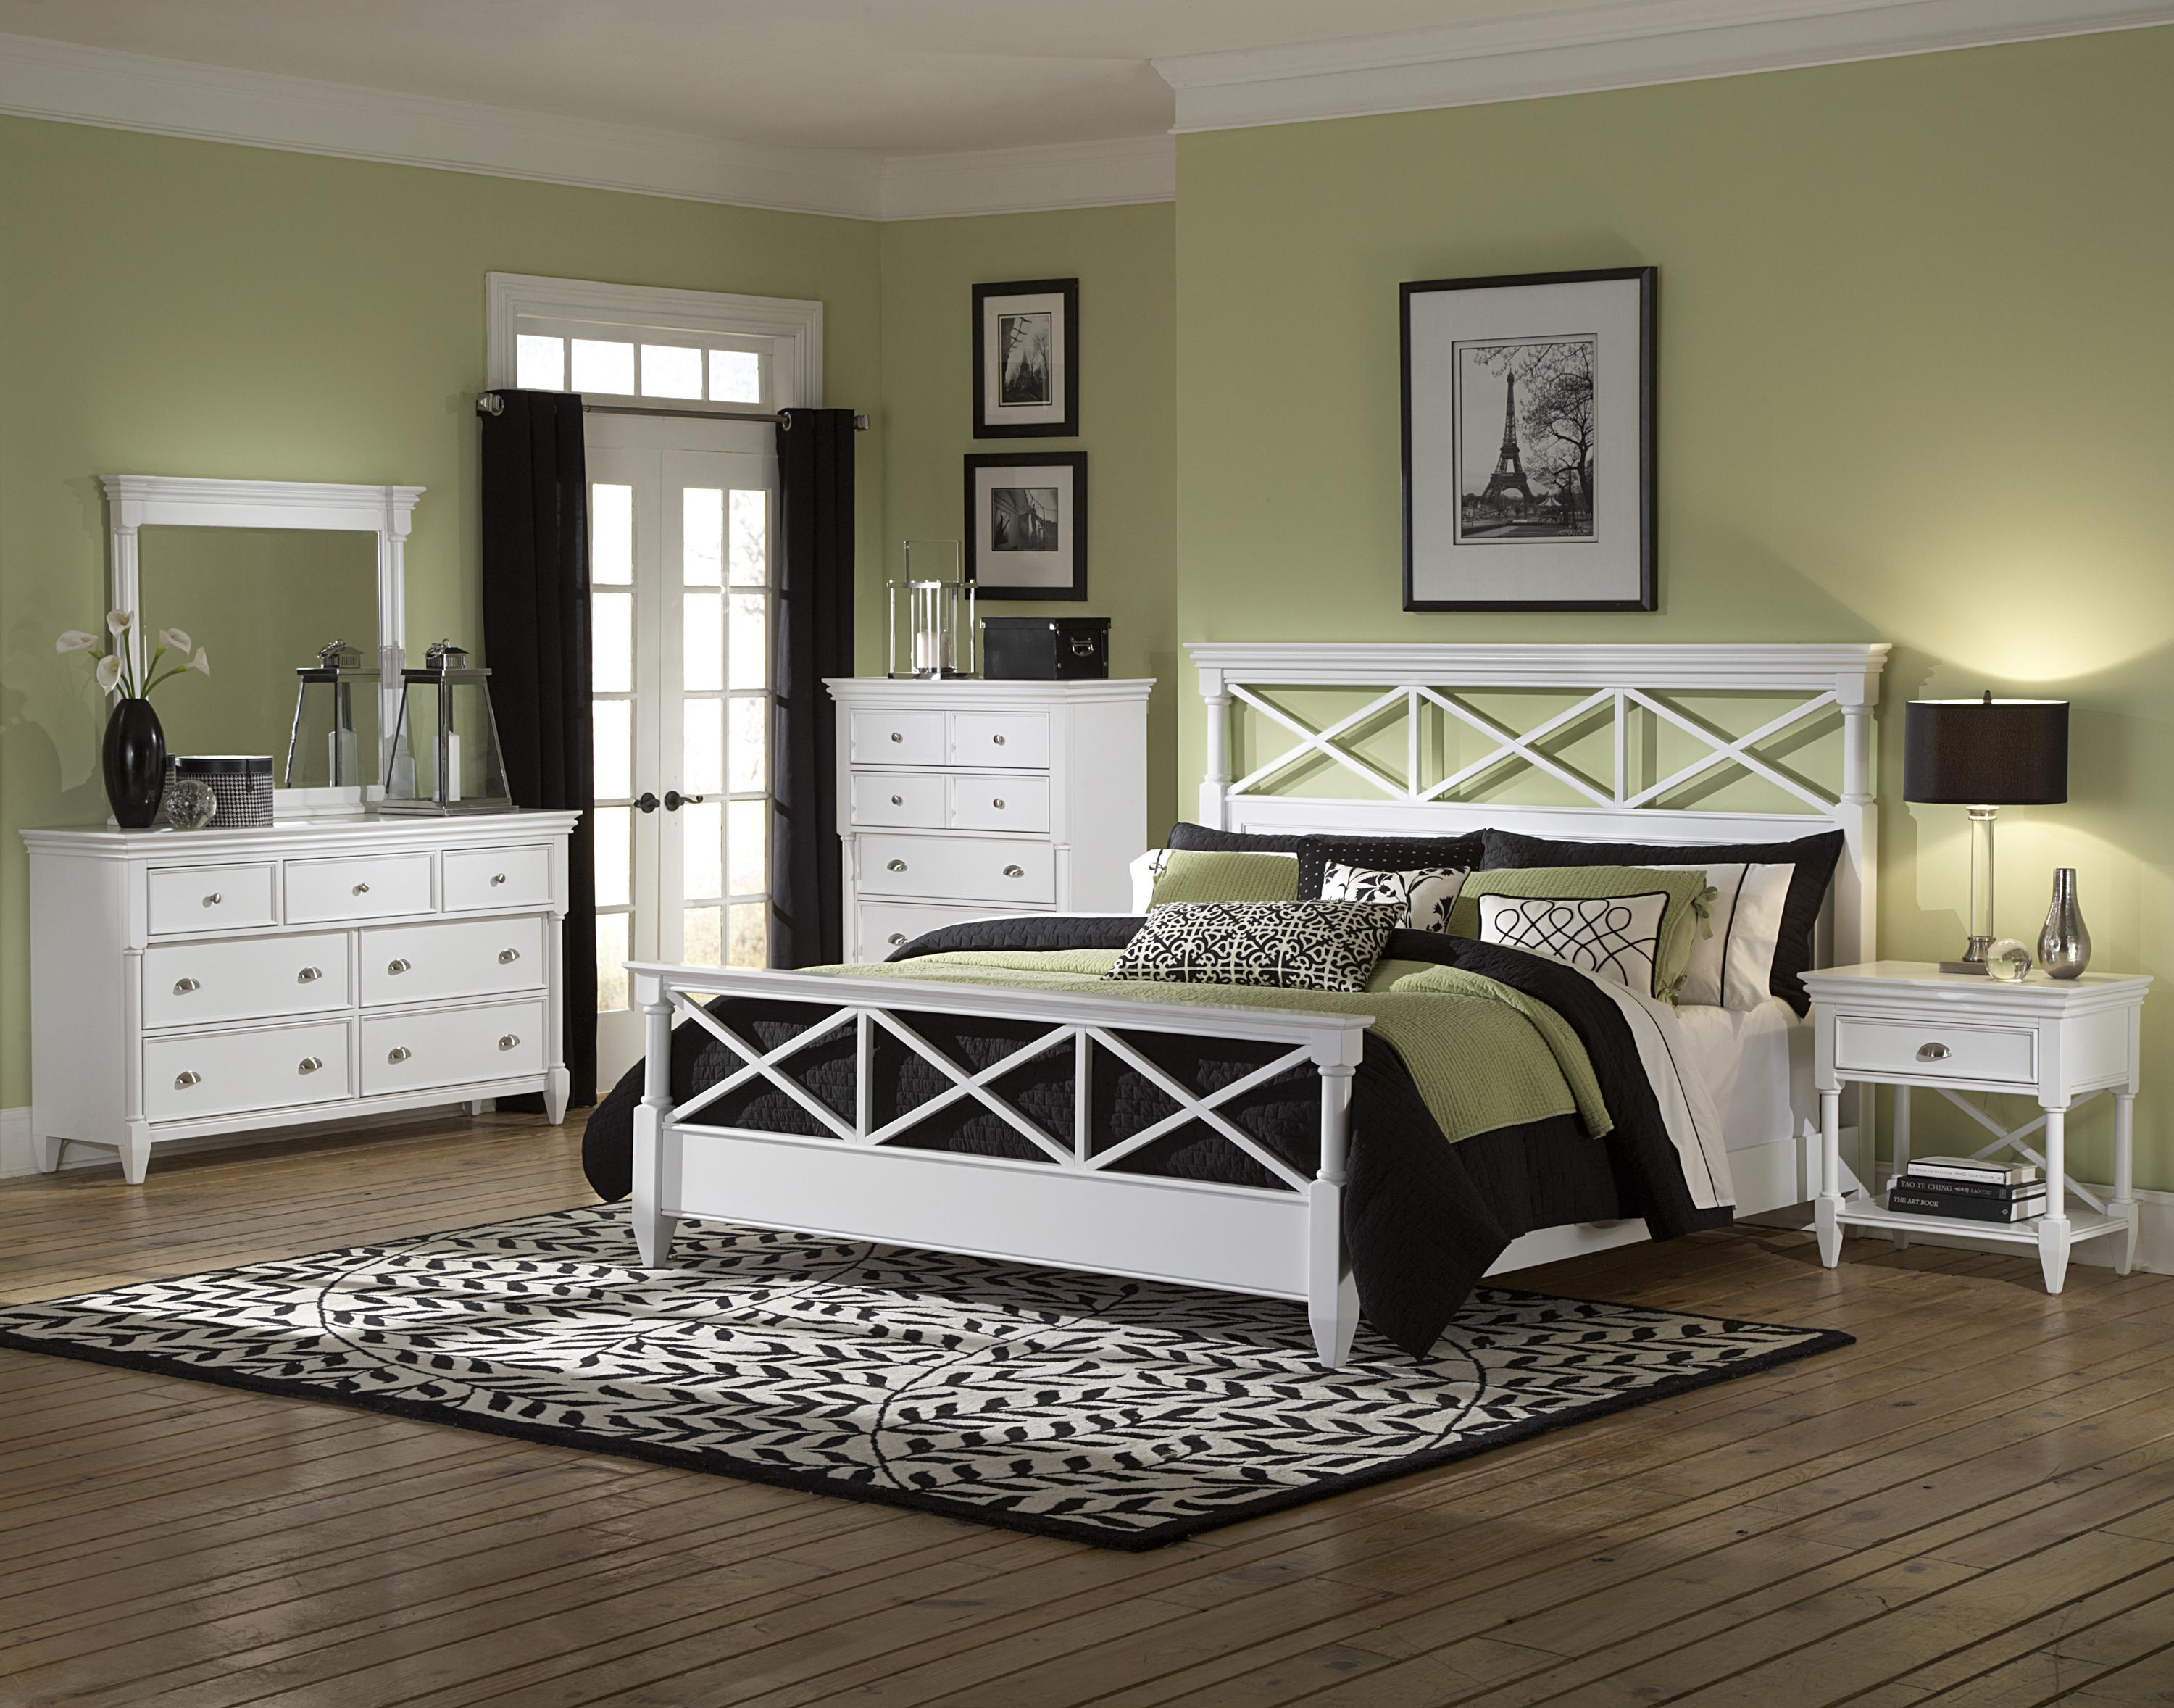 Magnussen Home Kasey  California King Bedroom Group - Item Number: B2026 C K Bedroom Group 1